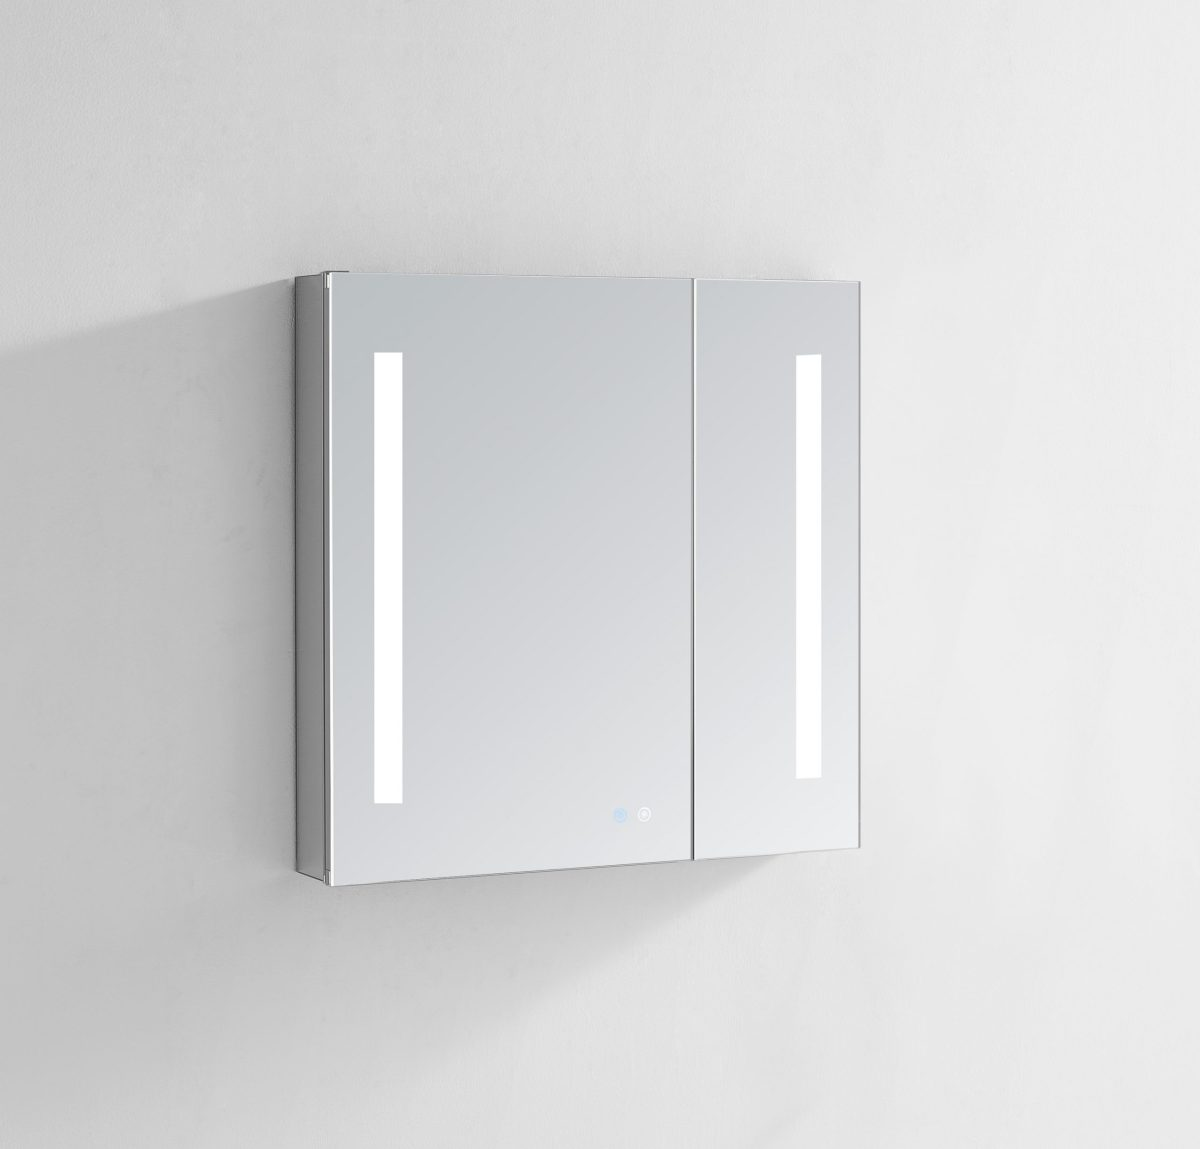 AQUADOM Signature Royale 30 inches x 30 inches LED Lighted Mirror Glass Medicine Cabinet for Bathroom